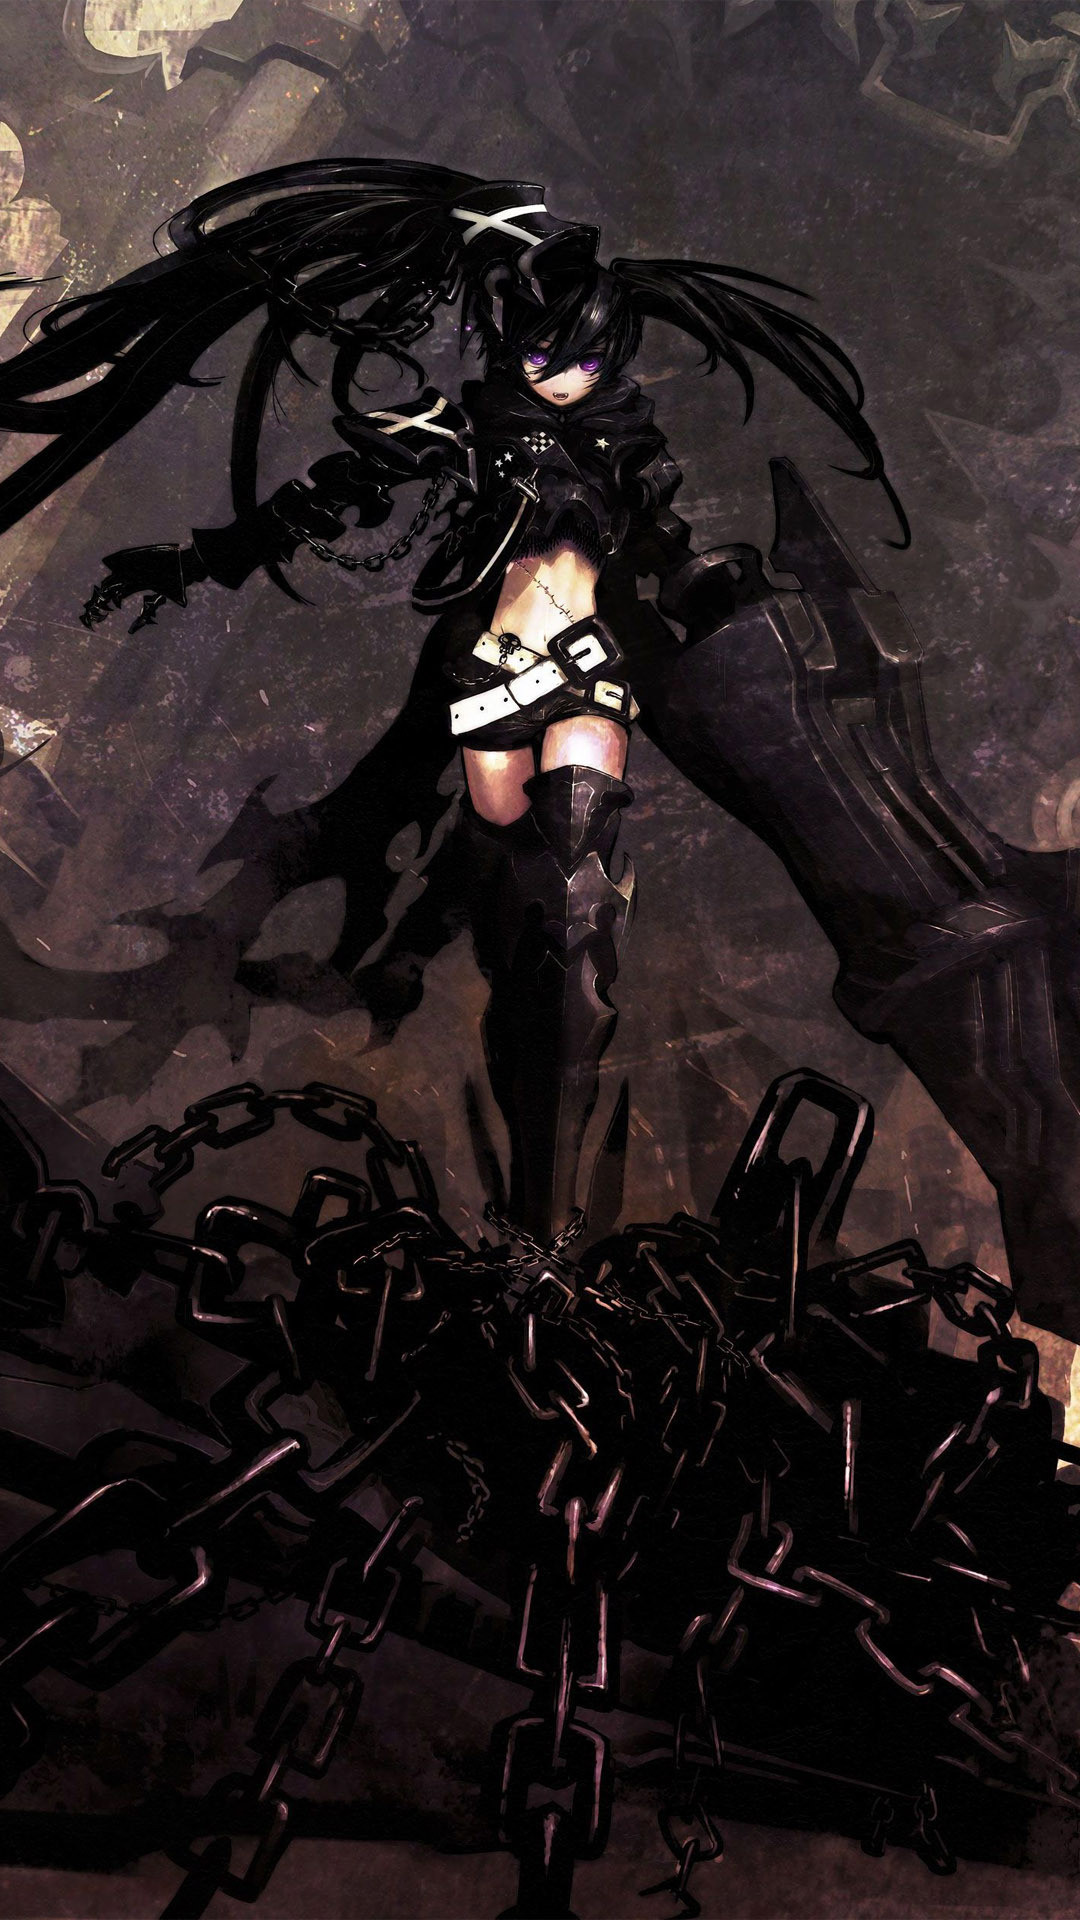 Anime • 76 Downloads Black Rock Shooter  - Girl Anime Wallpaper Handy , HD Wallpaper & Backgrounds